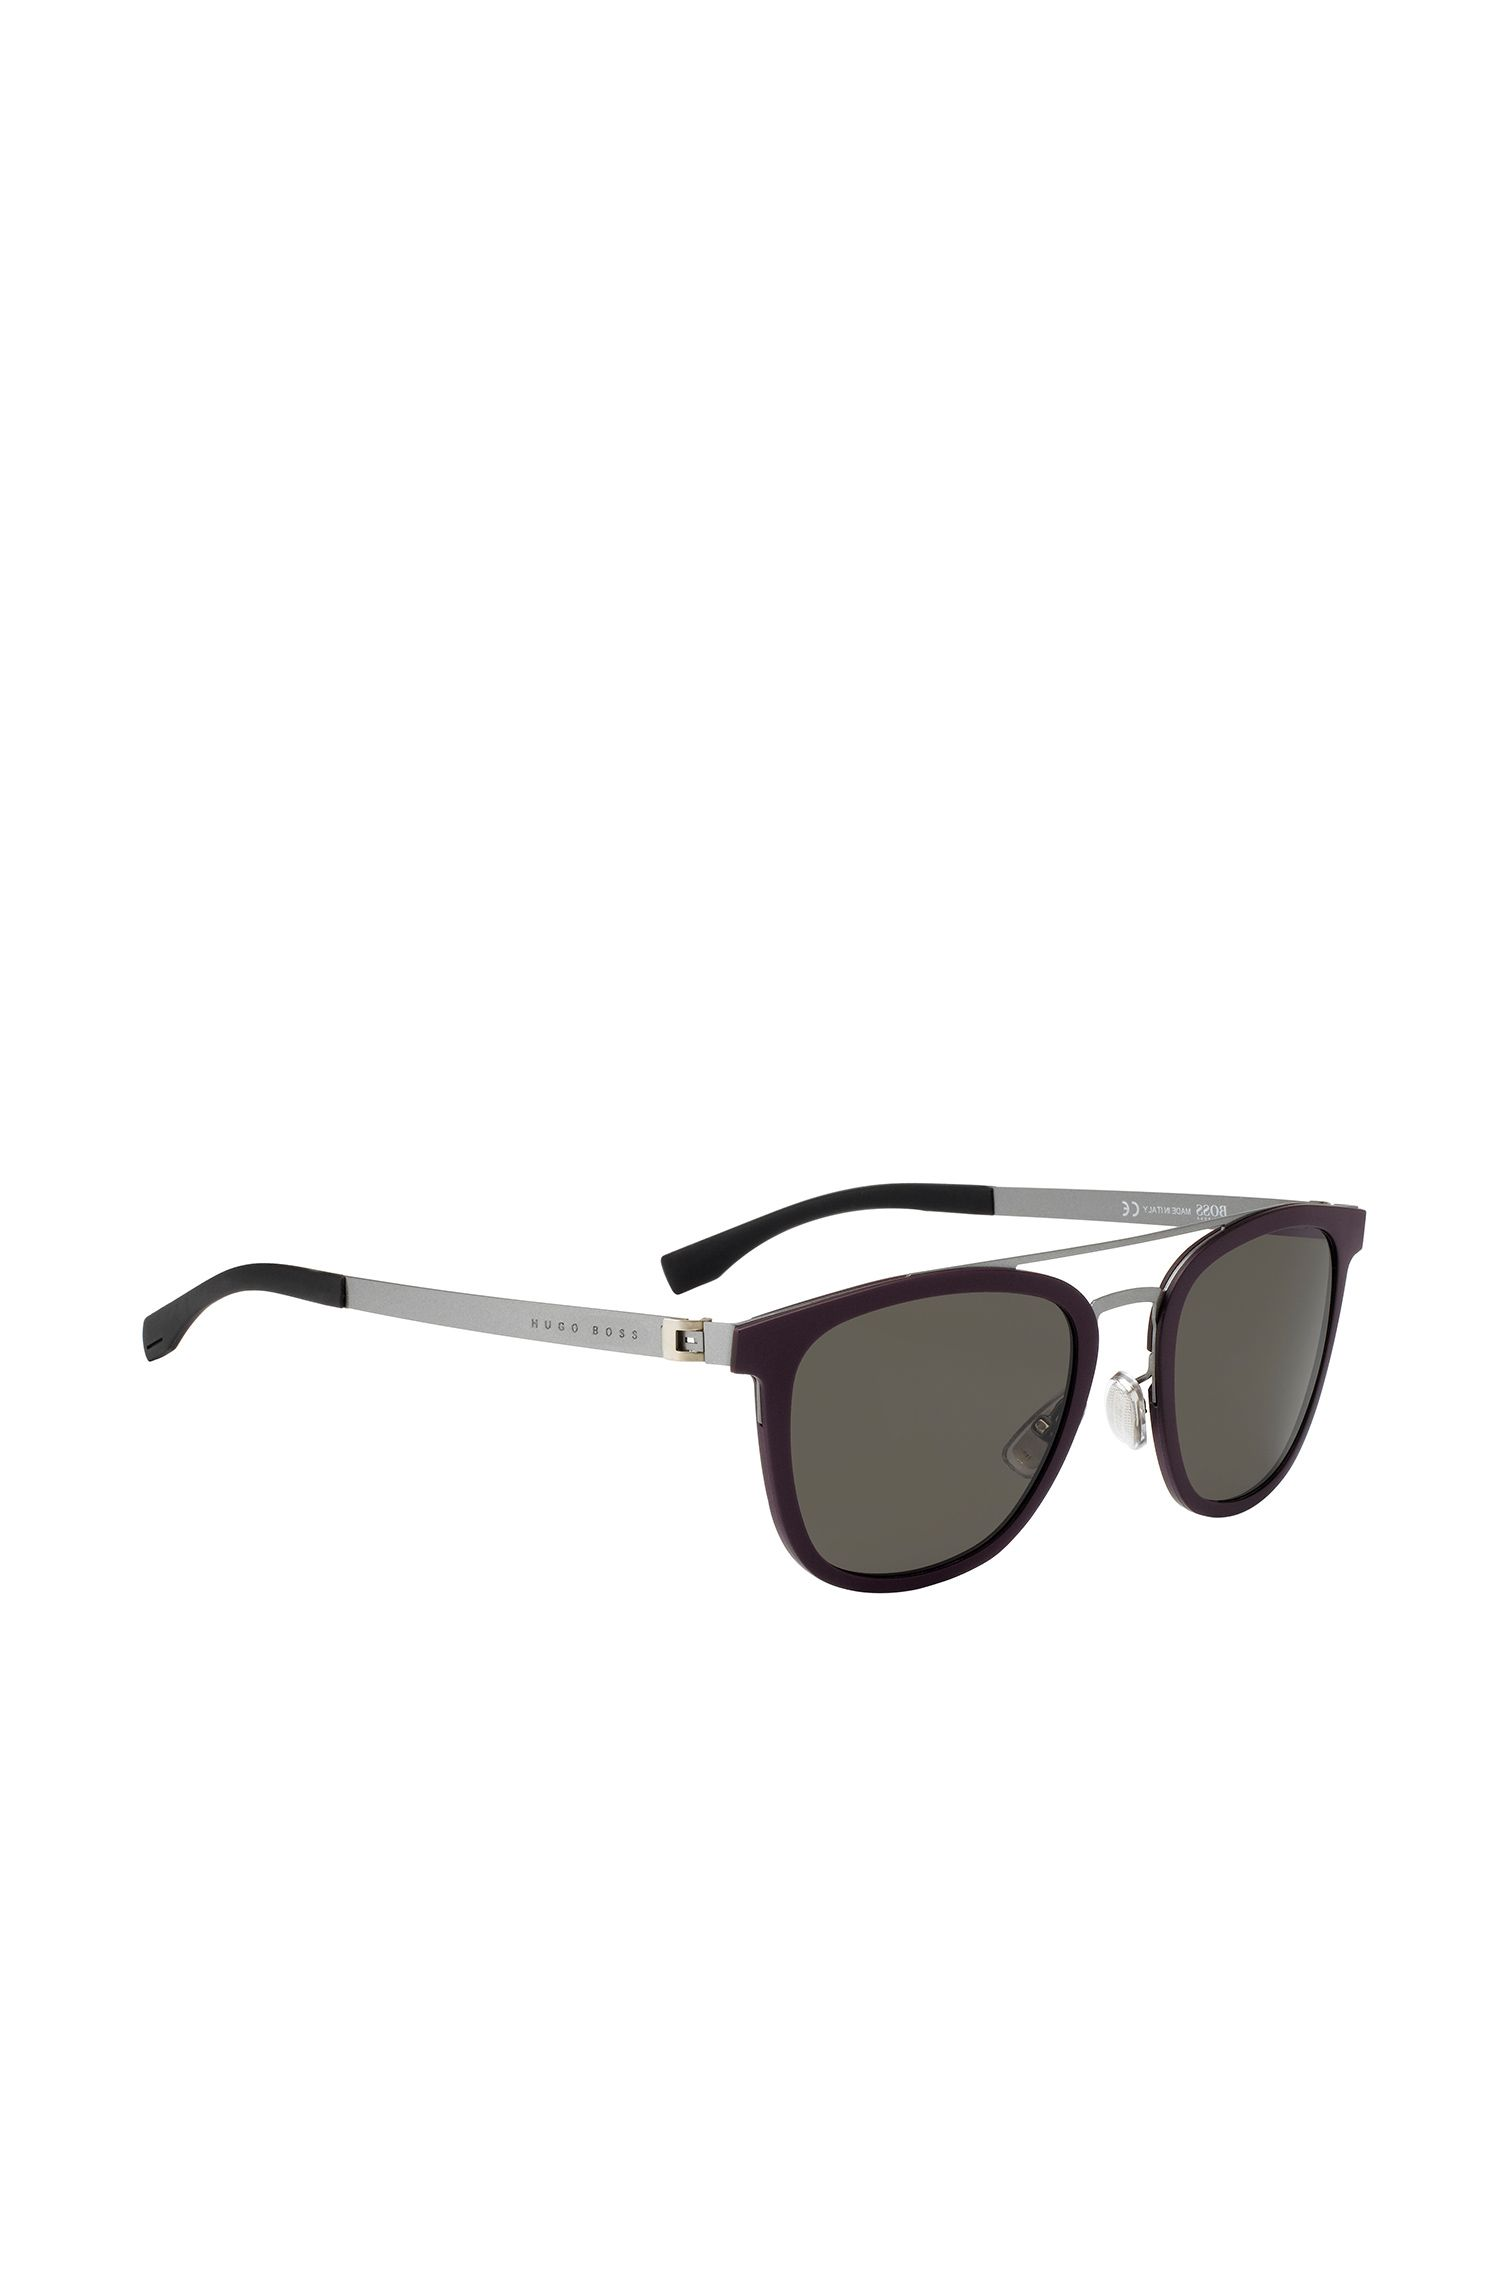 Acetate Stainless Steel Round Sunglasses | BOSS 0838S, Assorted-Pre-Pack